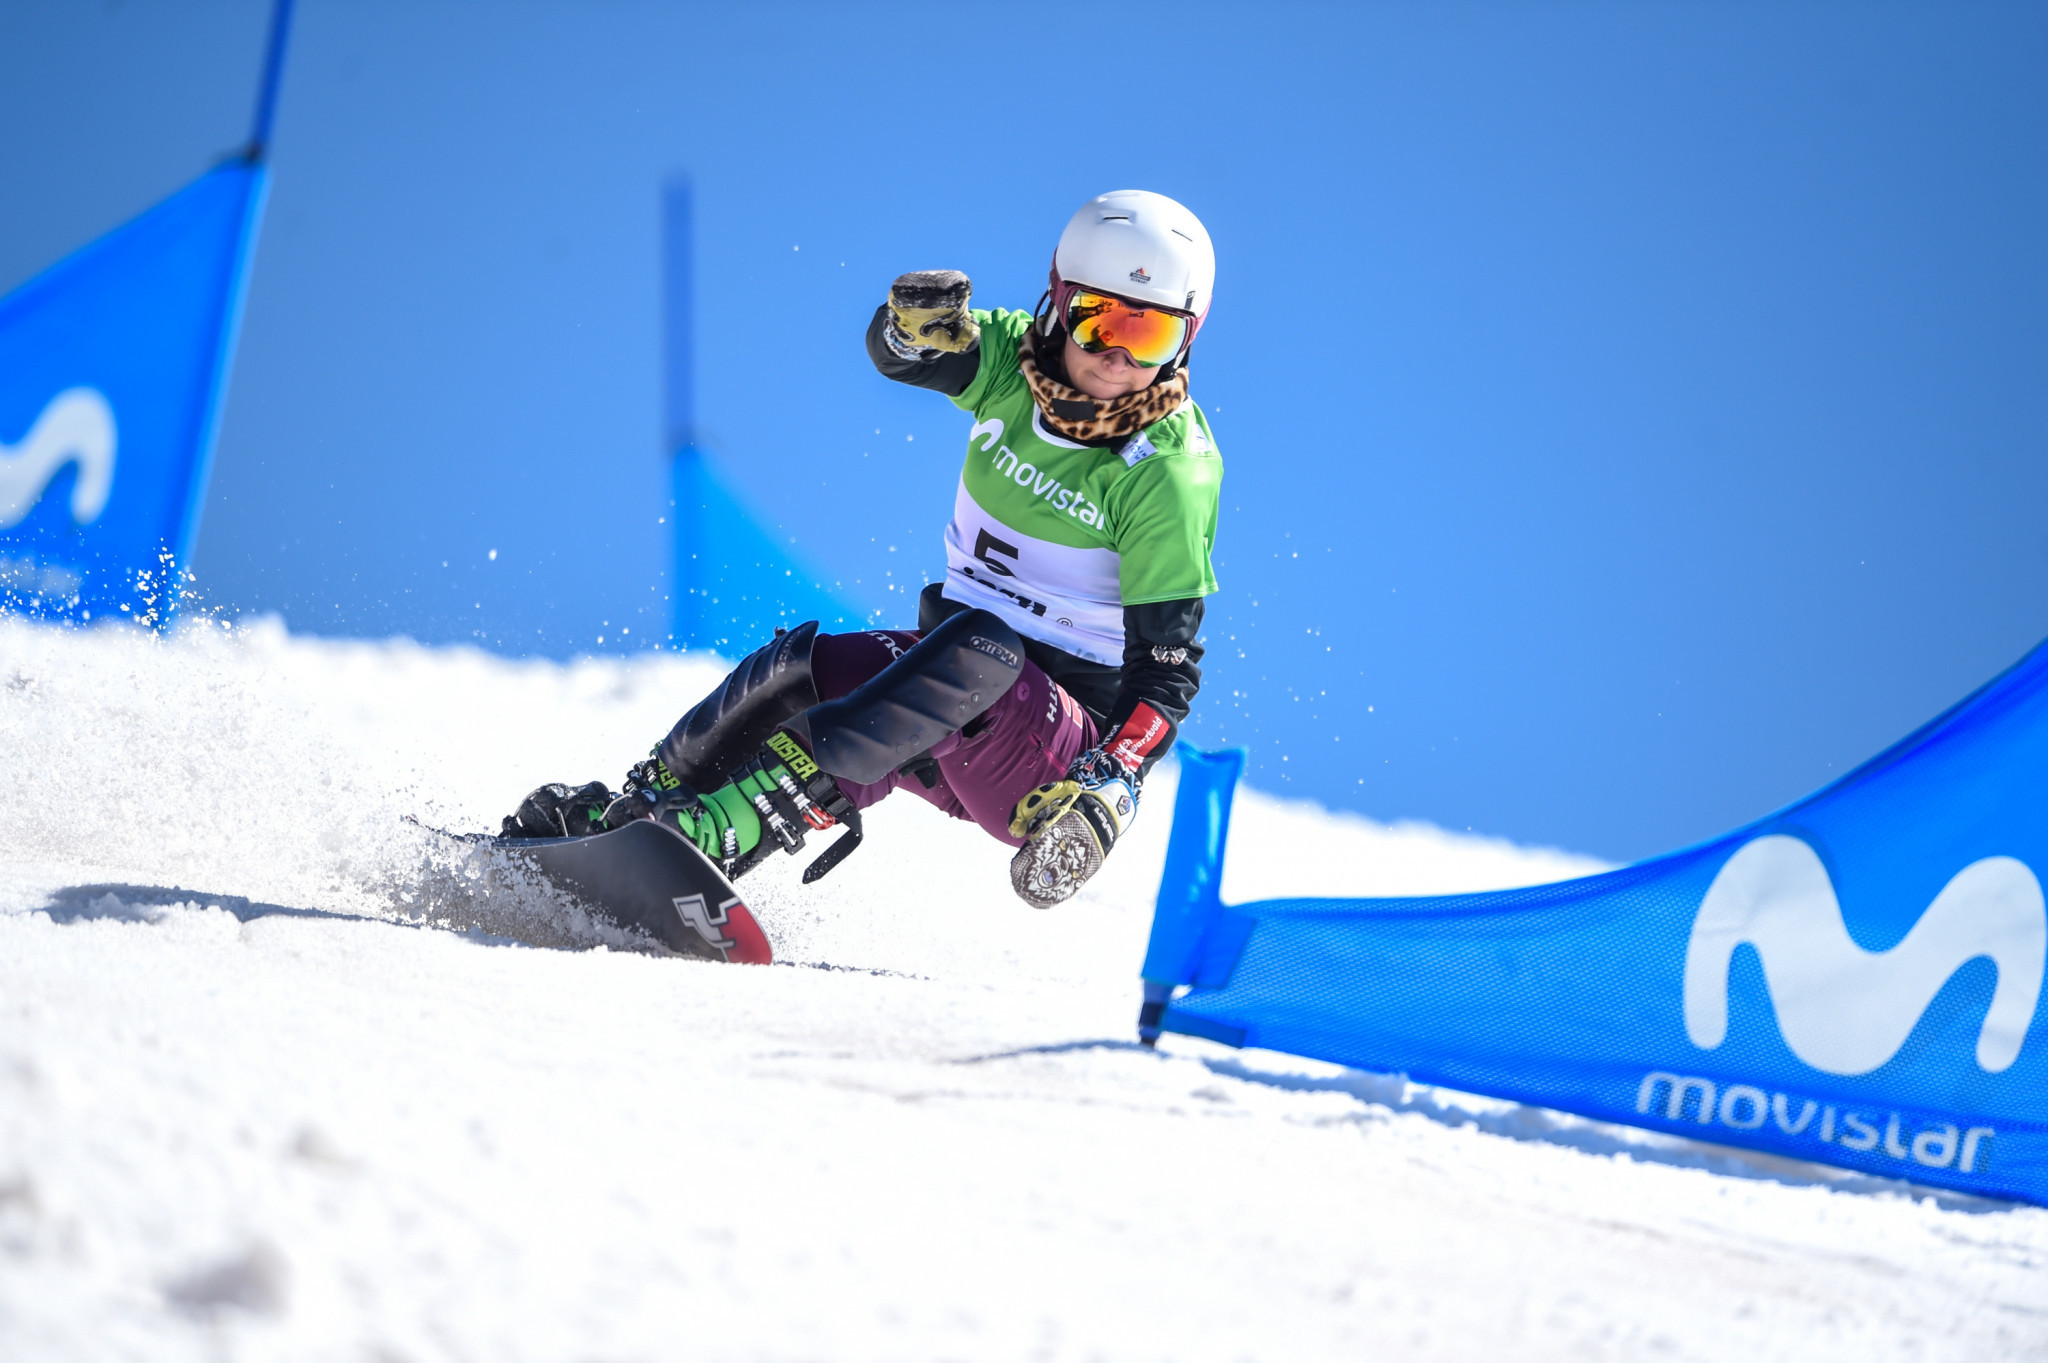 Ramona Theresia Hofmeister won a gold medal at the 2016 FIS Snowboard Junior World Championships ©Getty Images